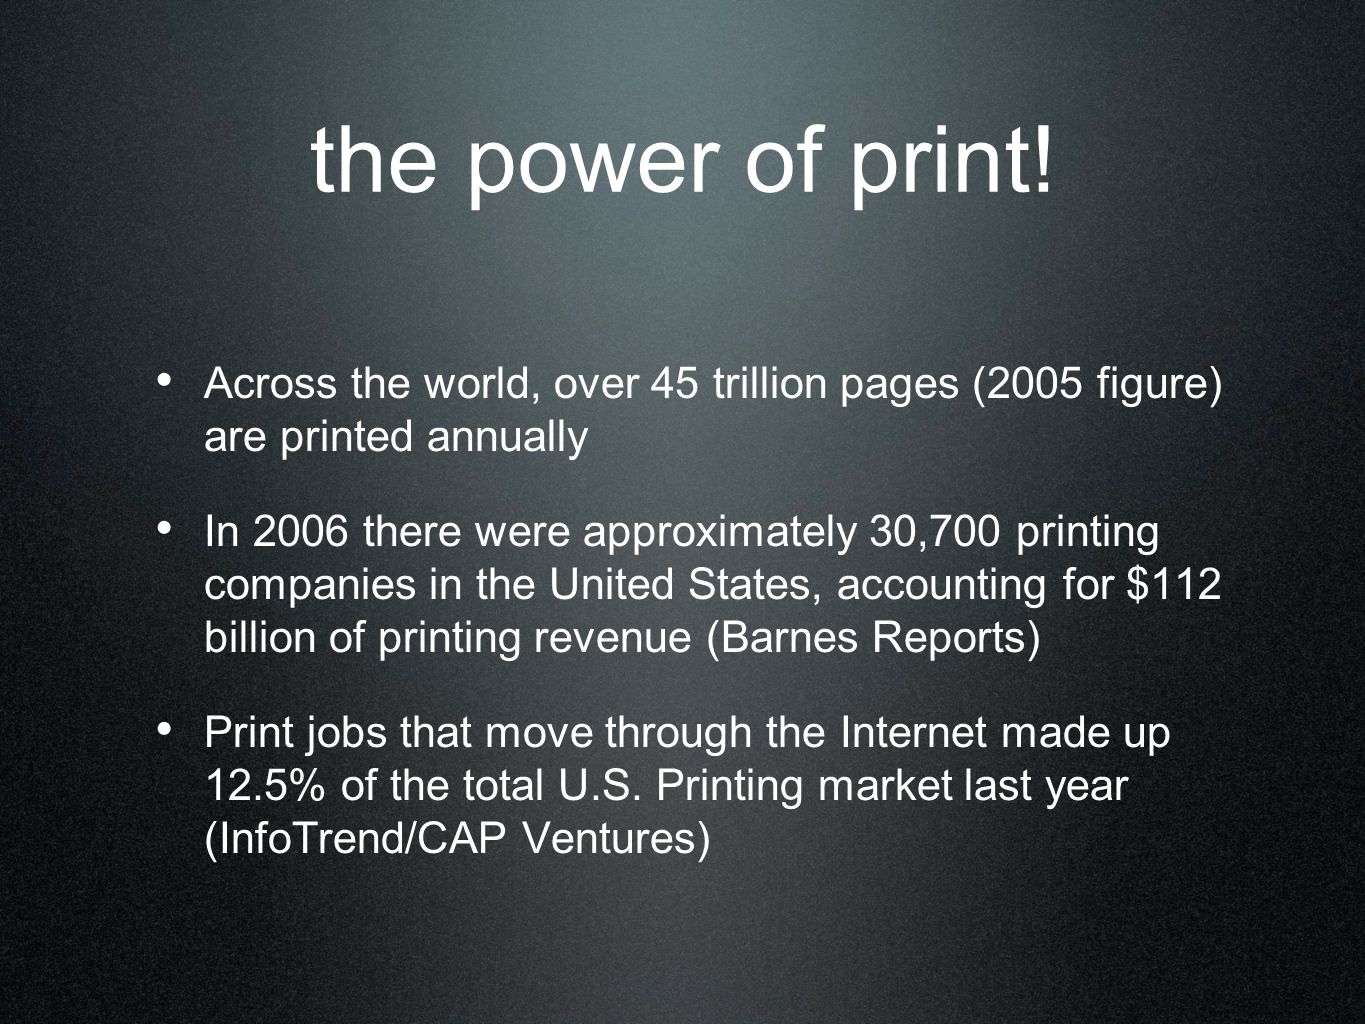 the power of print.